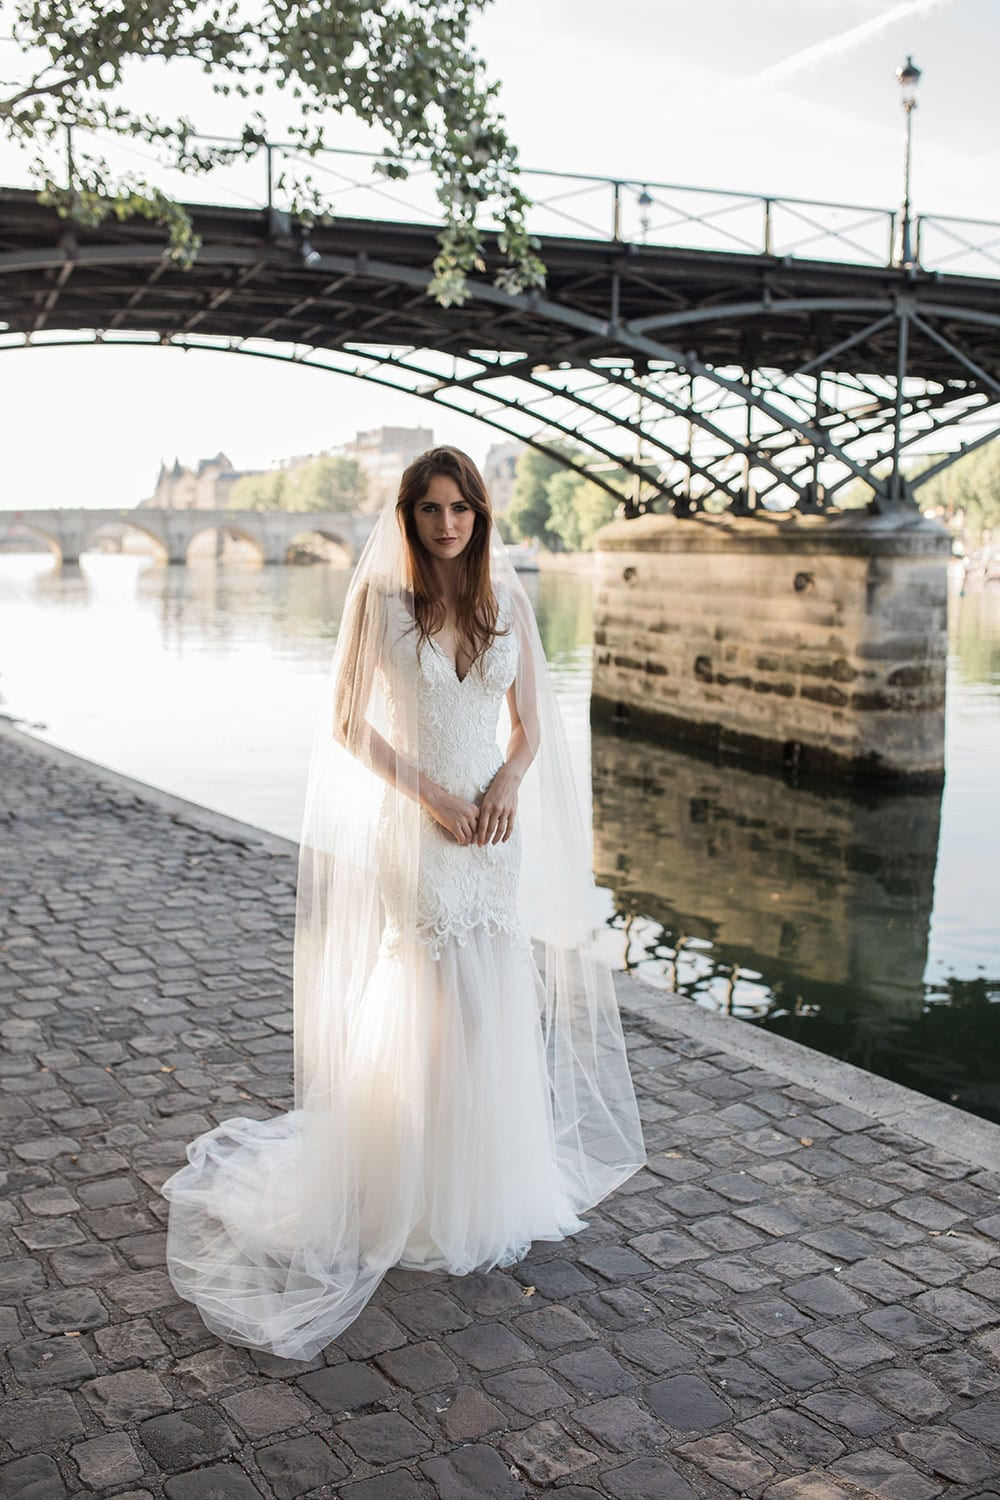 Model wearing Vinka Design Joanna Wedding Dress, a Deep V-Neck Fitted Lace Wedding Gown next to the river in Paris